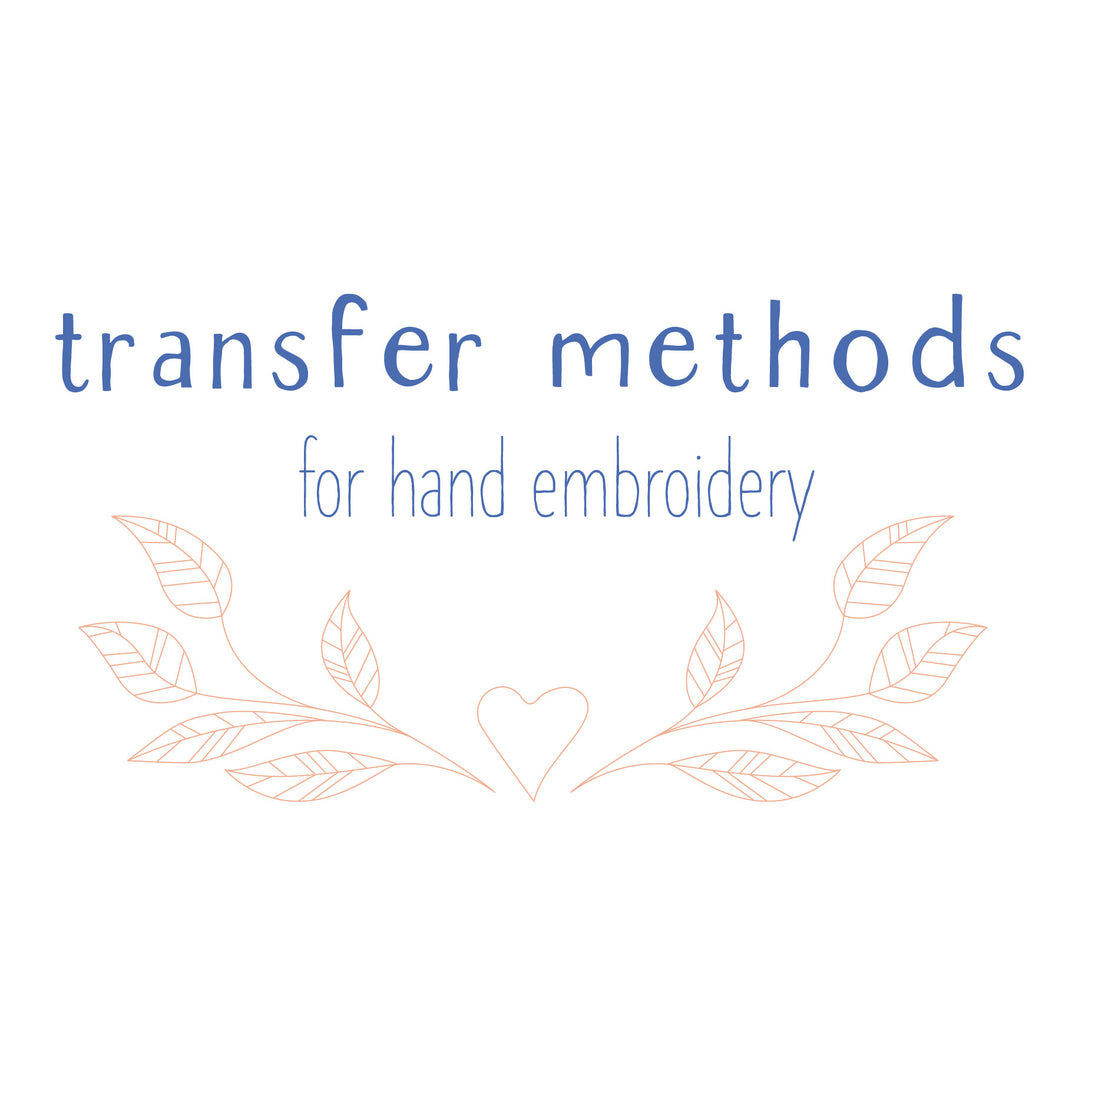 transfer methods